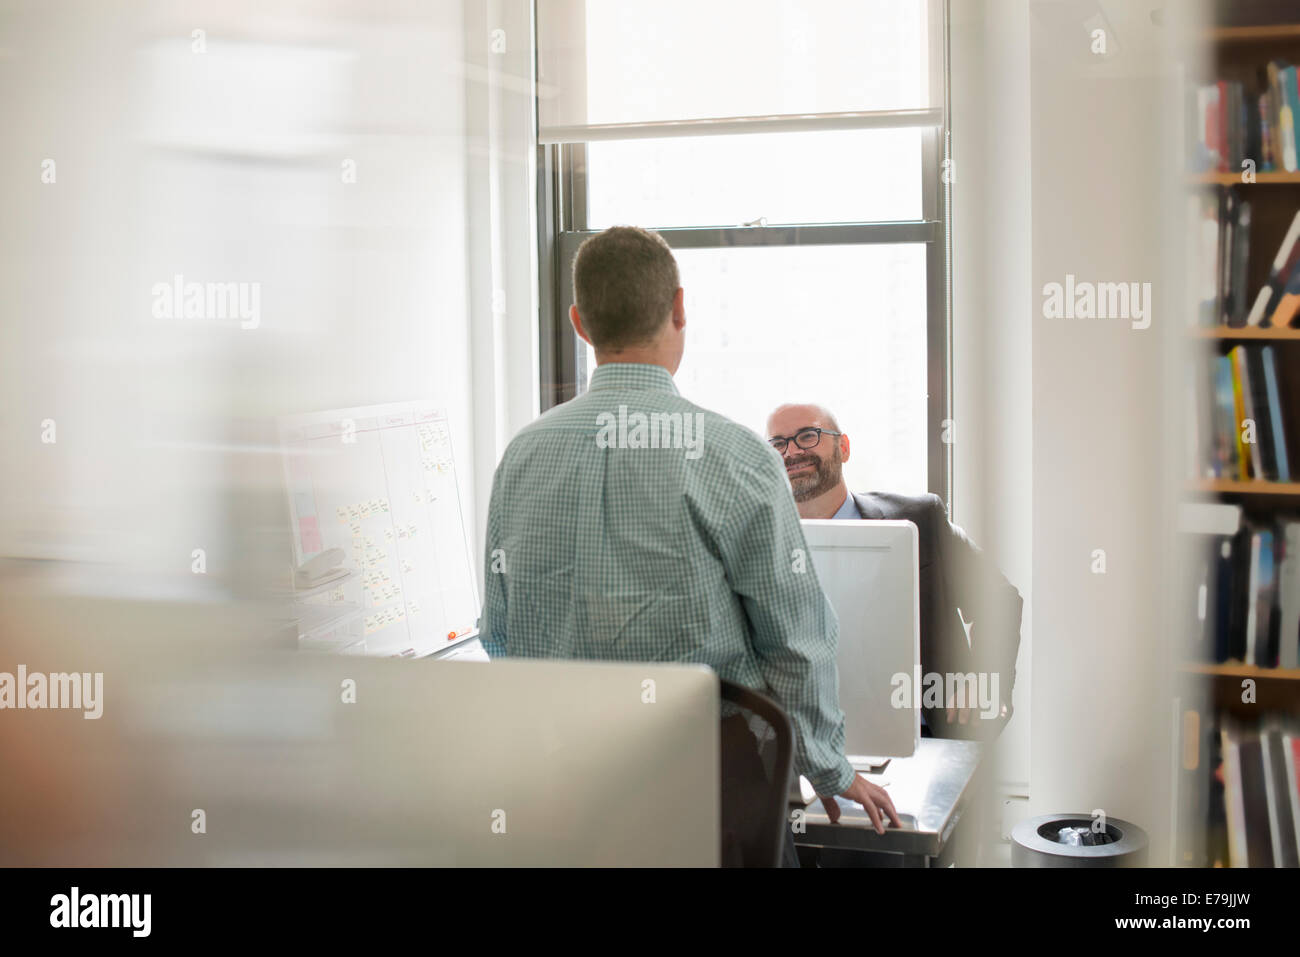 Office life. Two people, businessmen talking to each other over their desks. - Stock Image